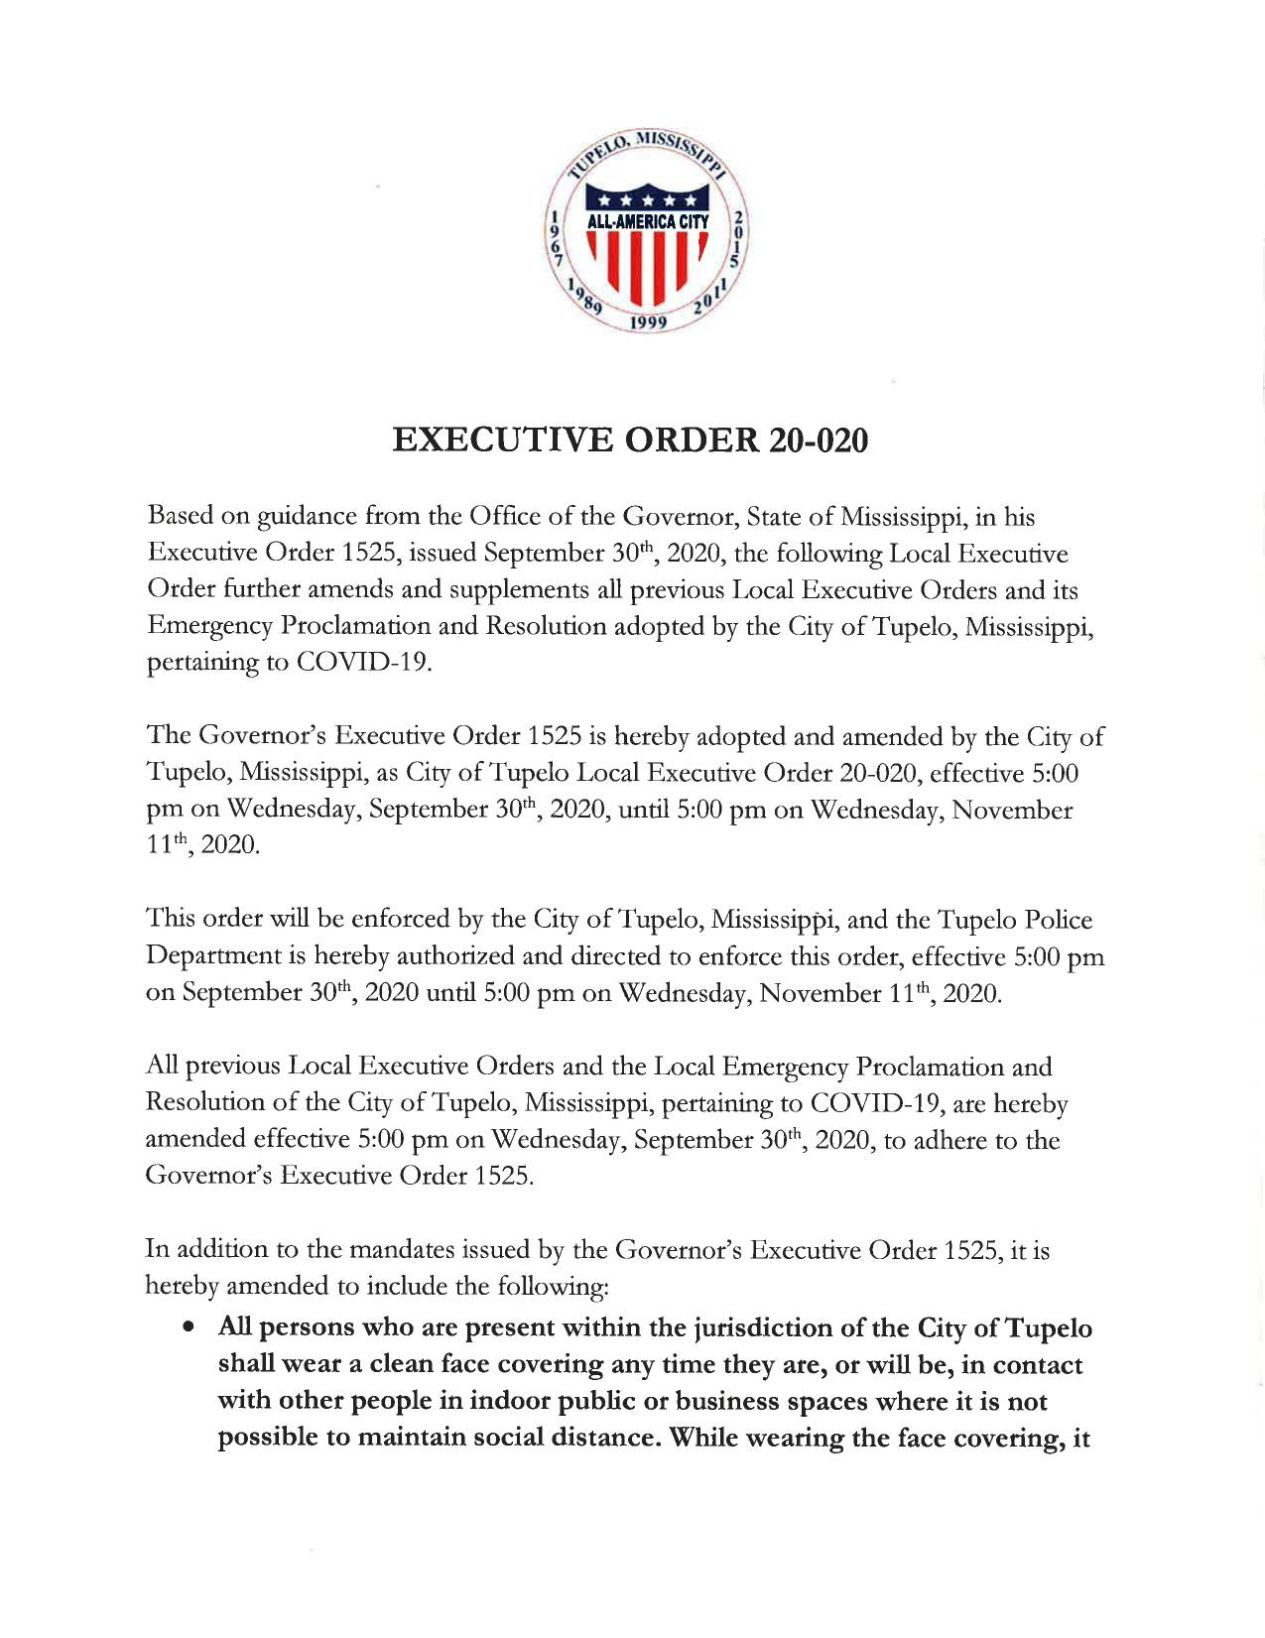 City of Tupelo's latest executive order